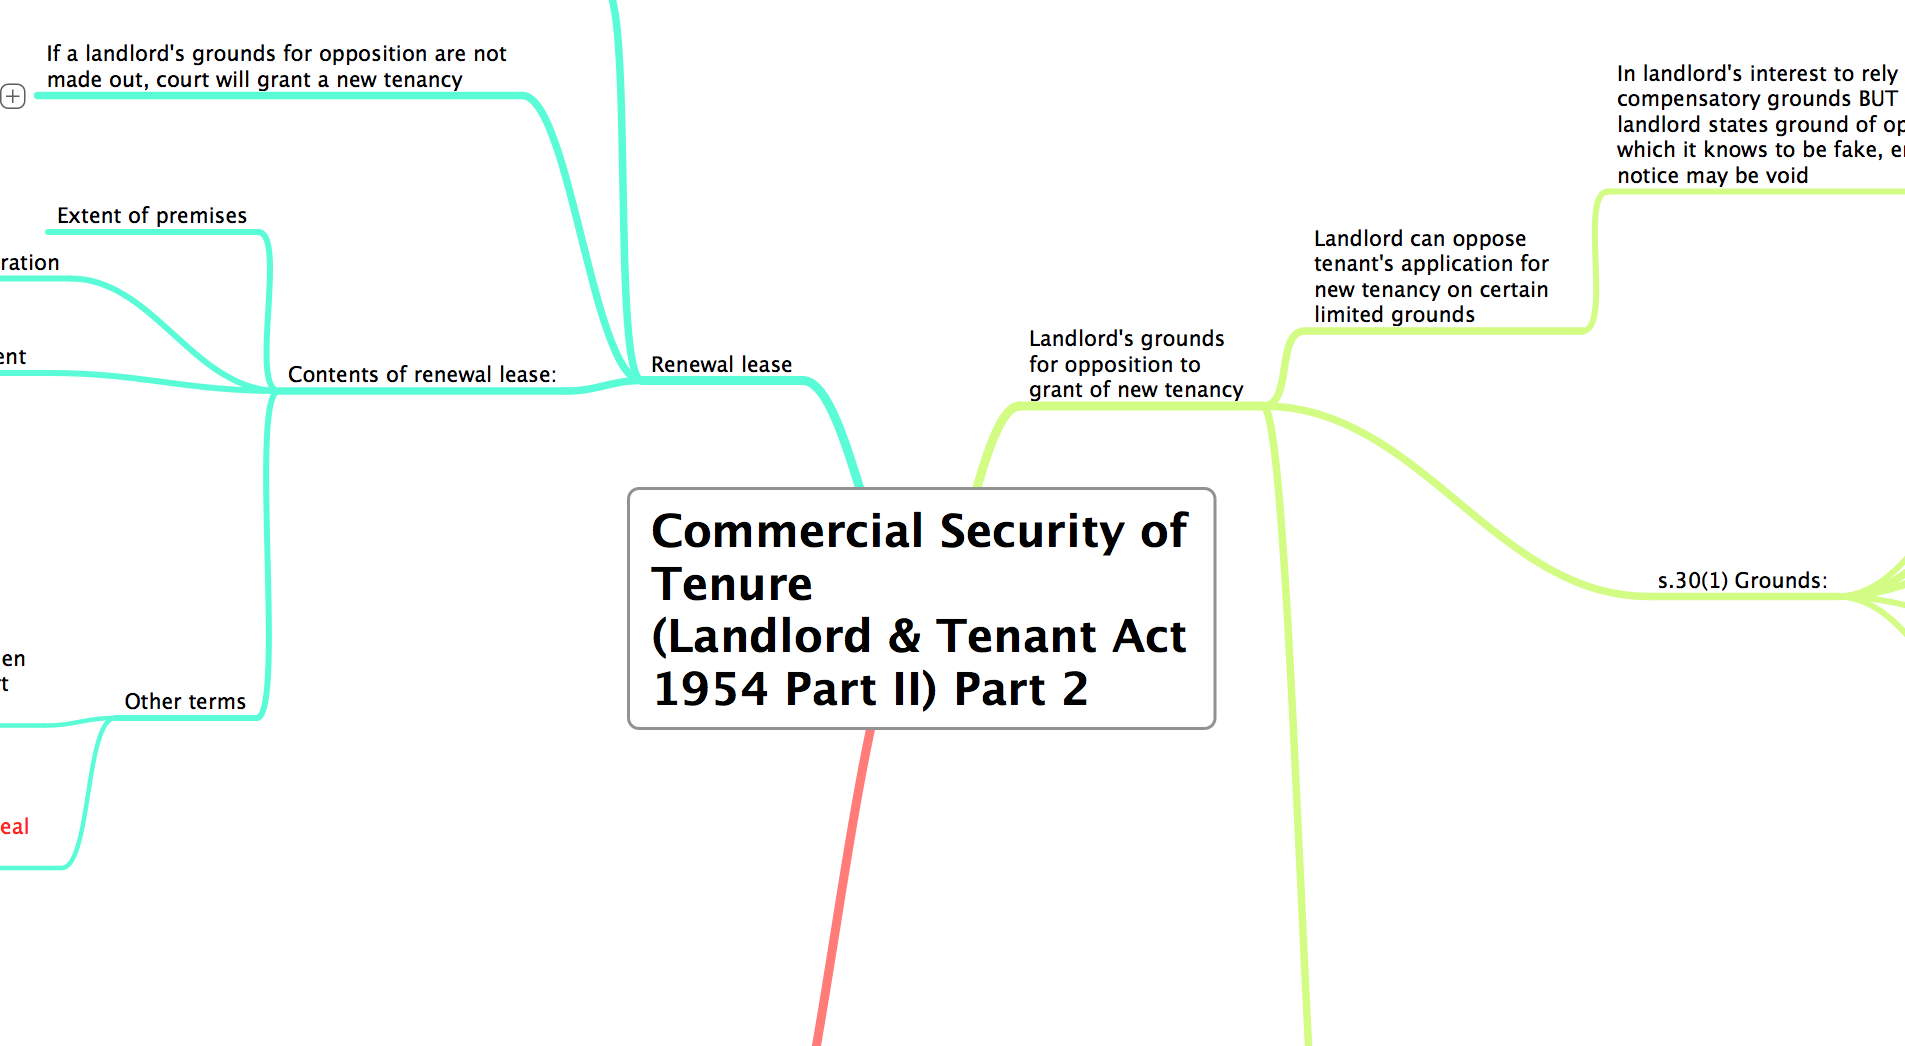 COMMERCIAL SECURITY OF TENURE PART 2